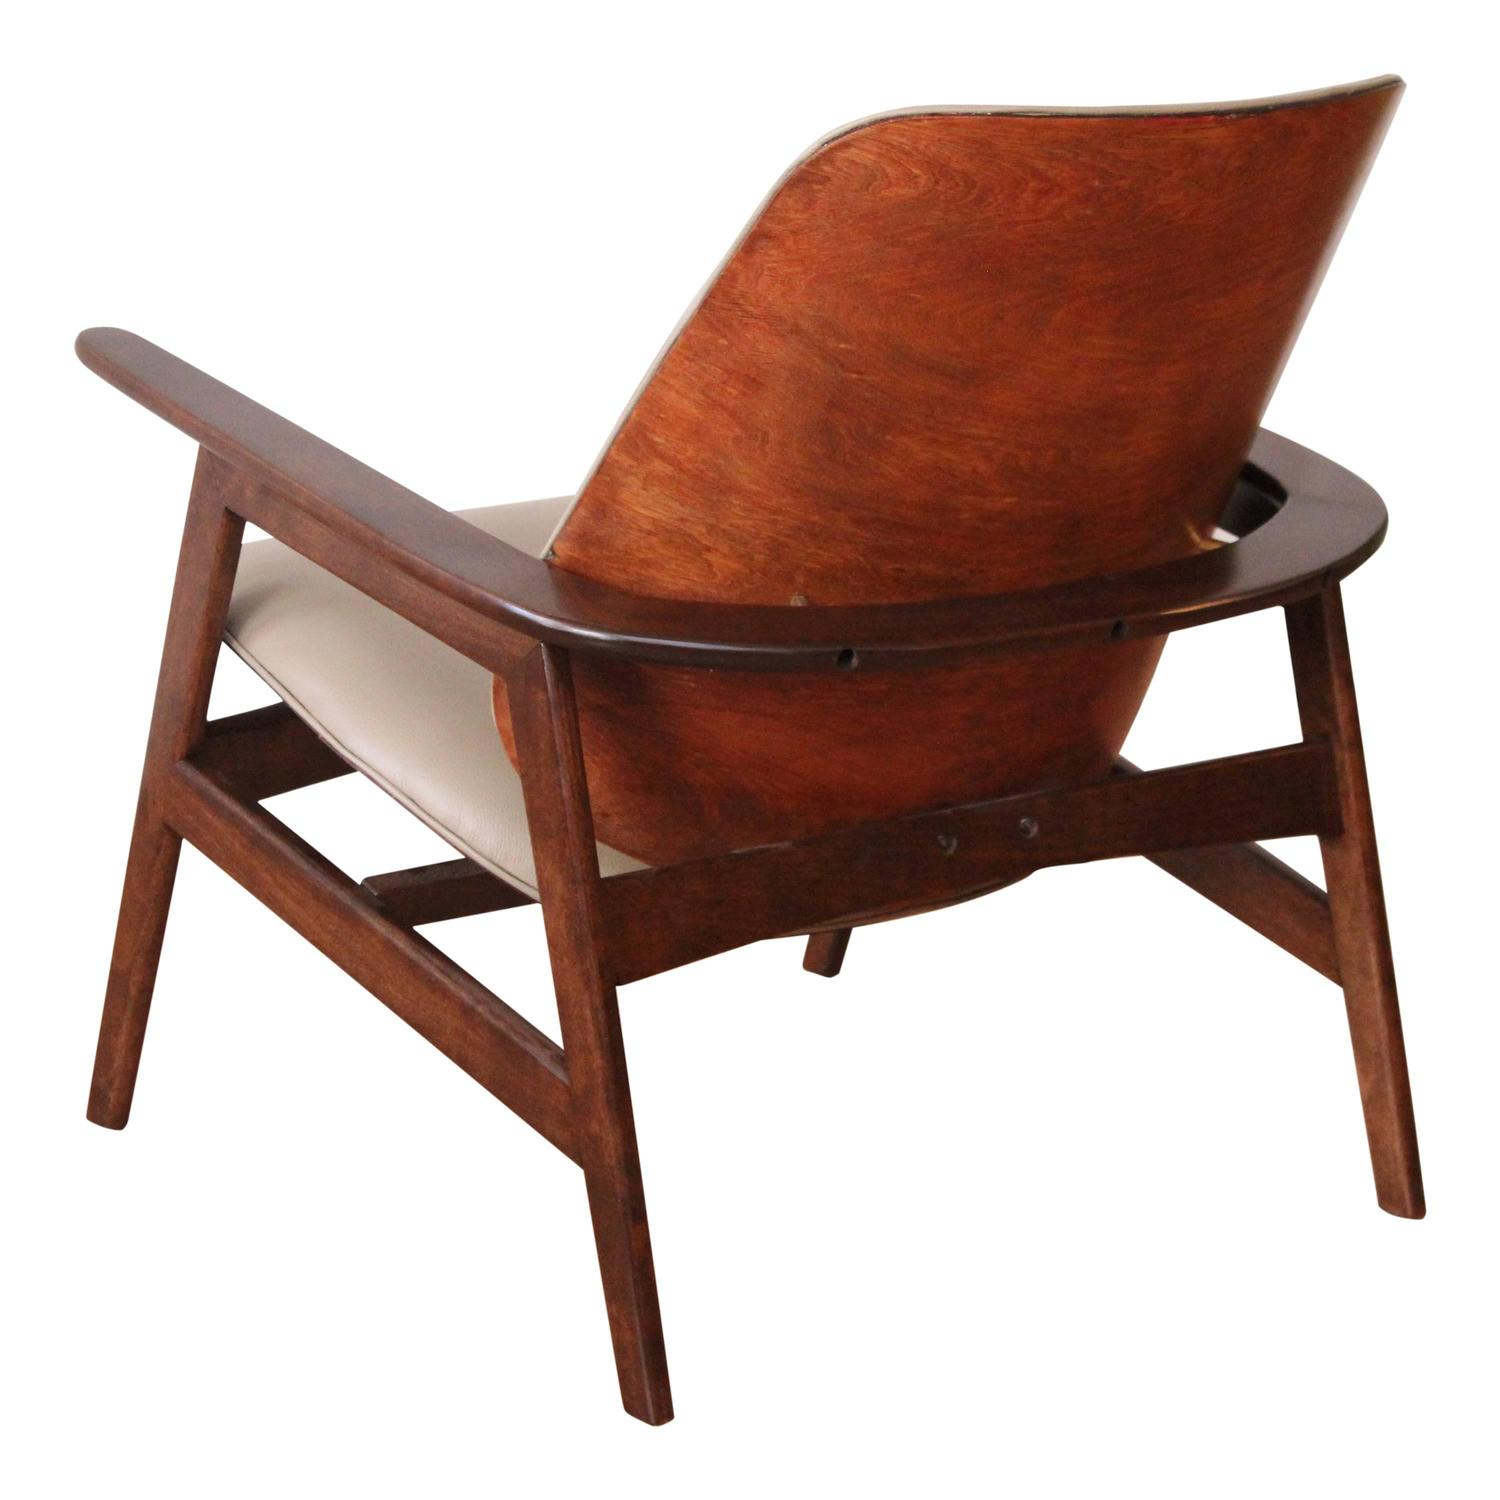 Superb img of Koda Wood Lounge Chair at 1stdibs with #A34828 color and 1500x1500 pixels